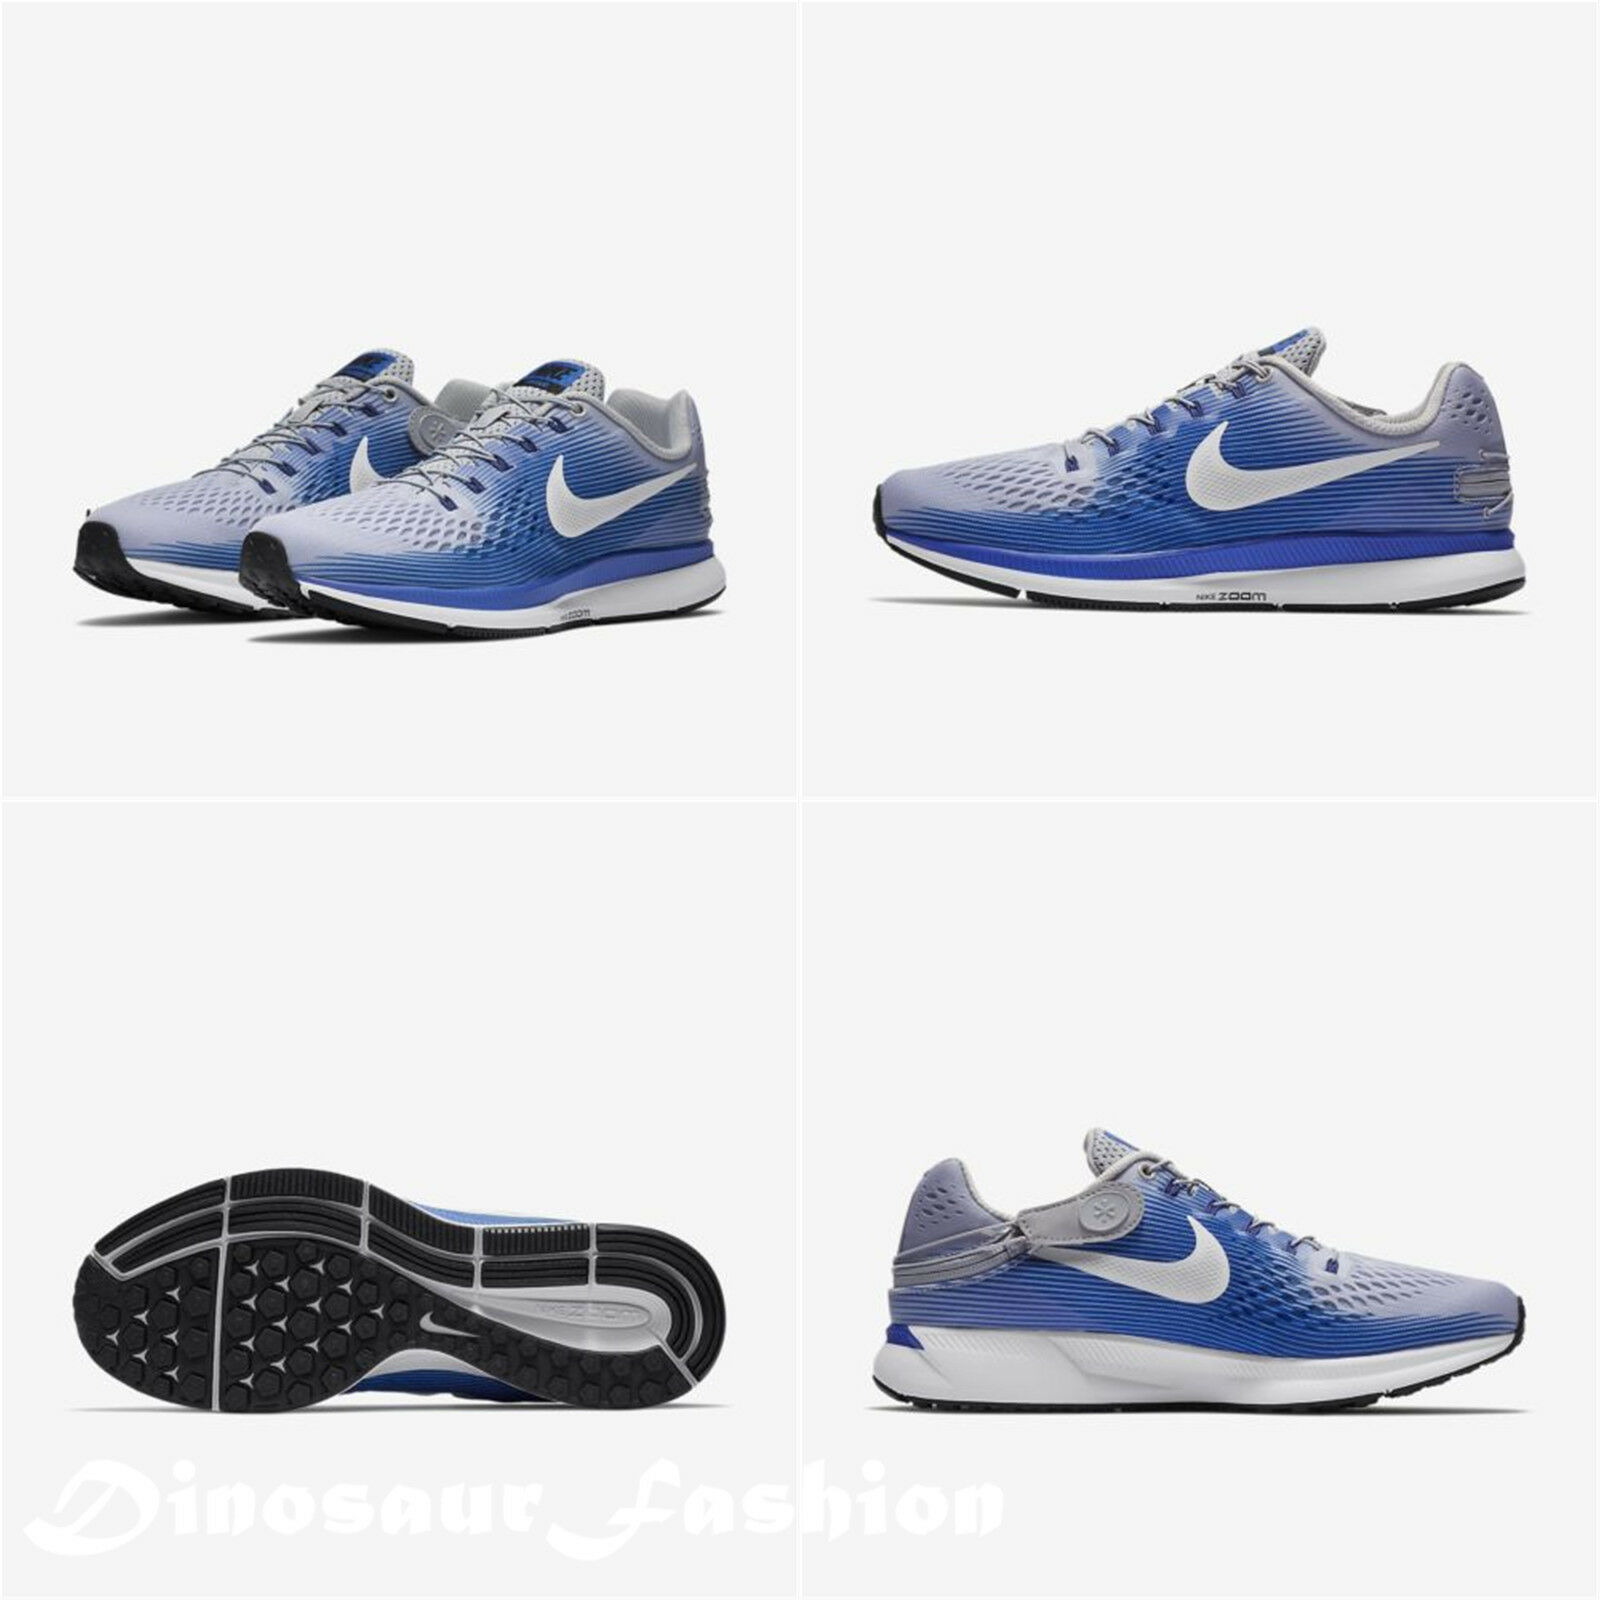 425ac2185 NIKE AIR ZOOM PEGASUS 34 34 34 FLYEASE 4E (904676-004).Men s Running Shoe  (EXTRA WIDE) ca6e9a